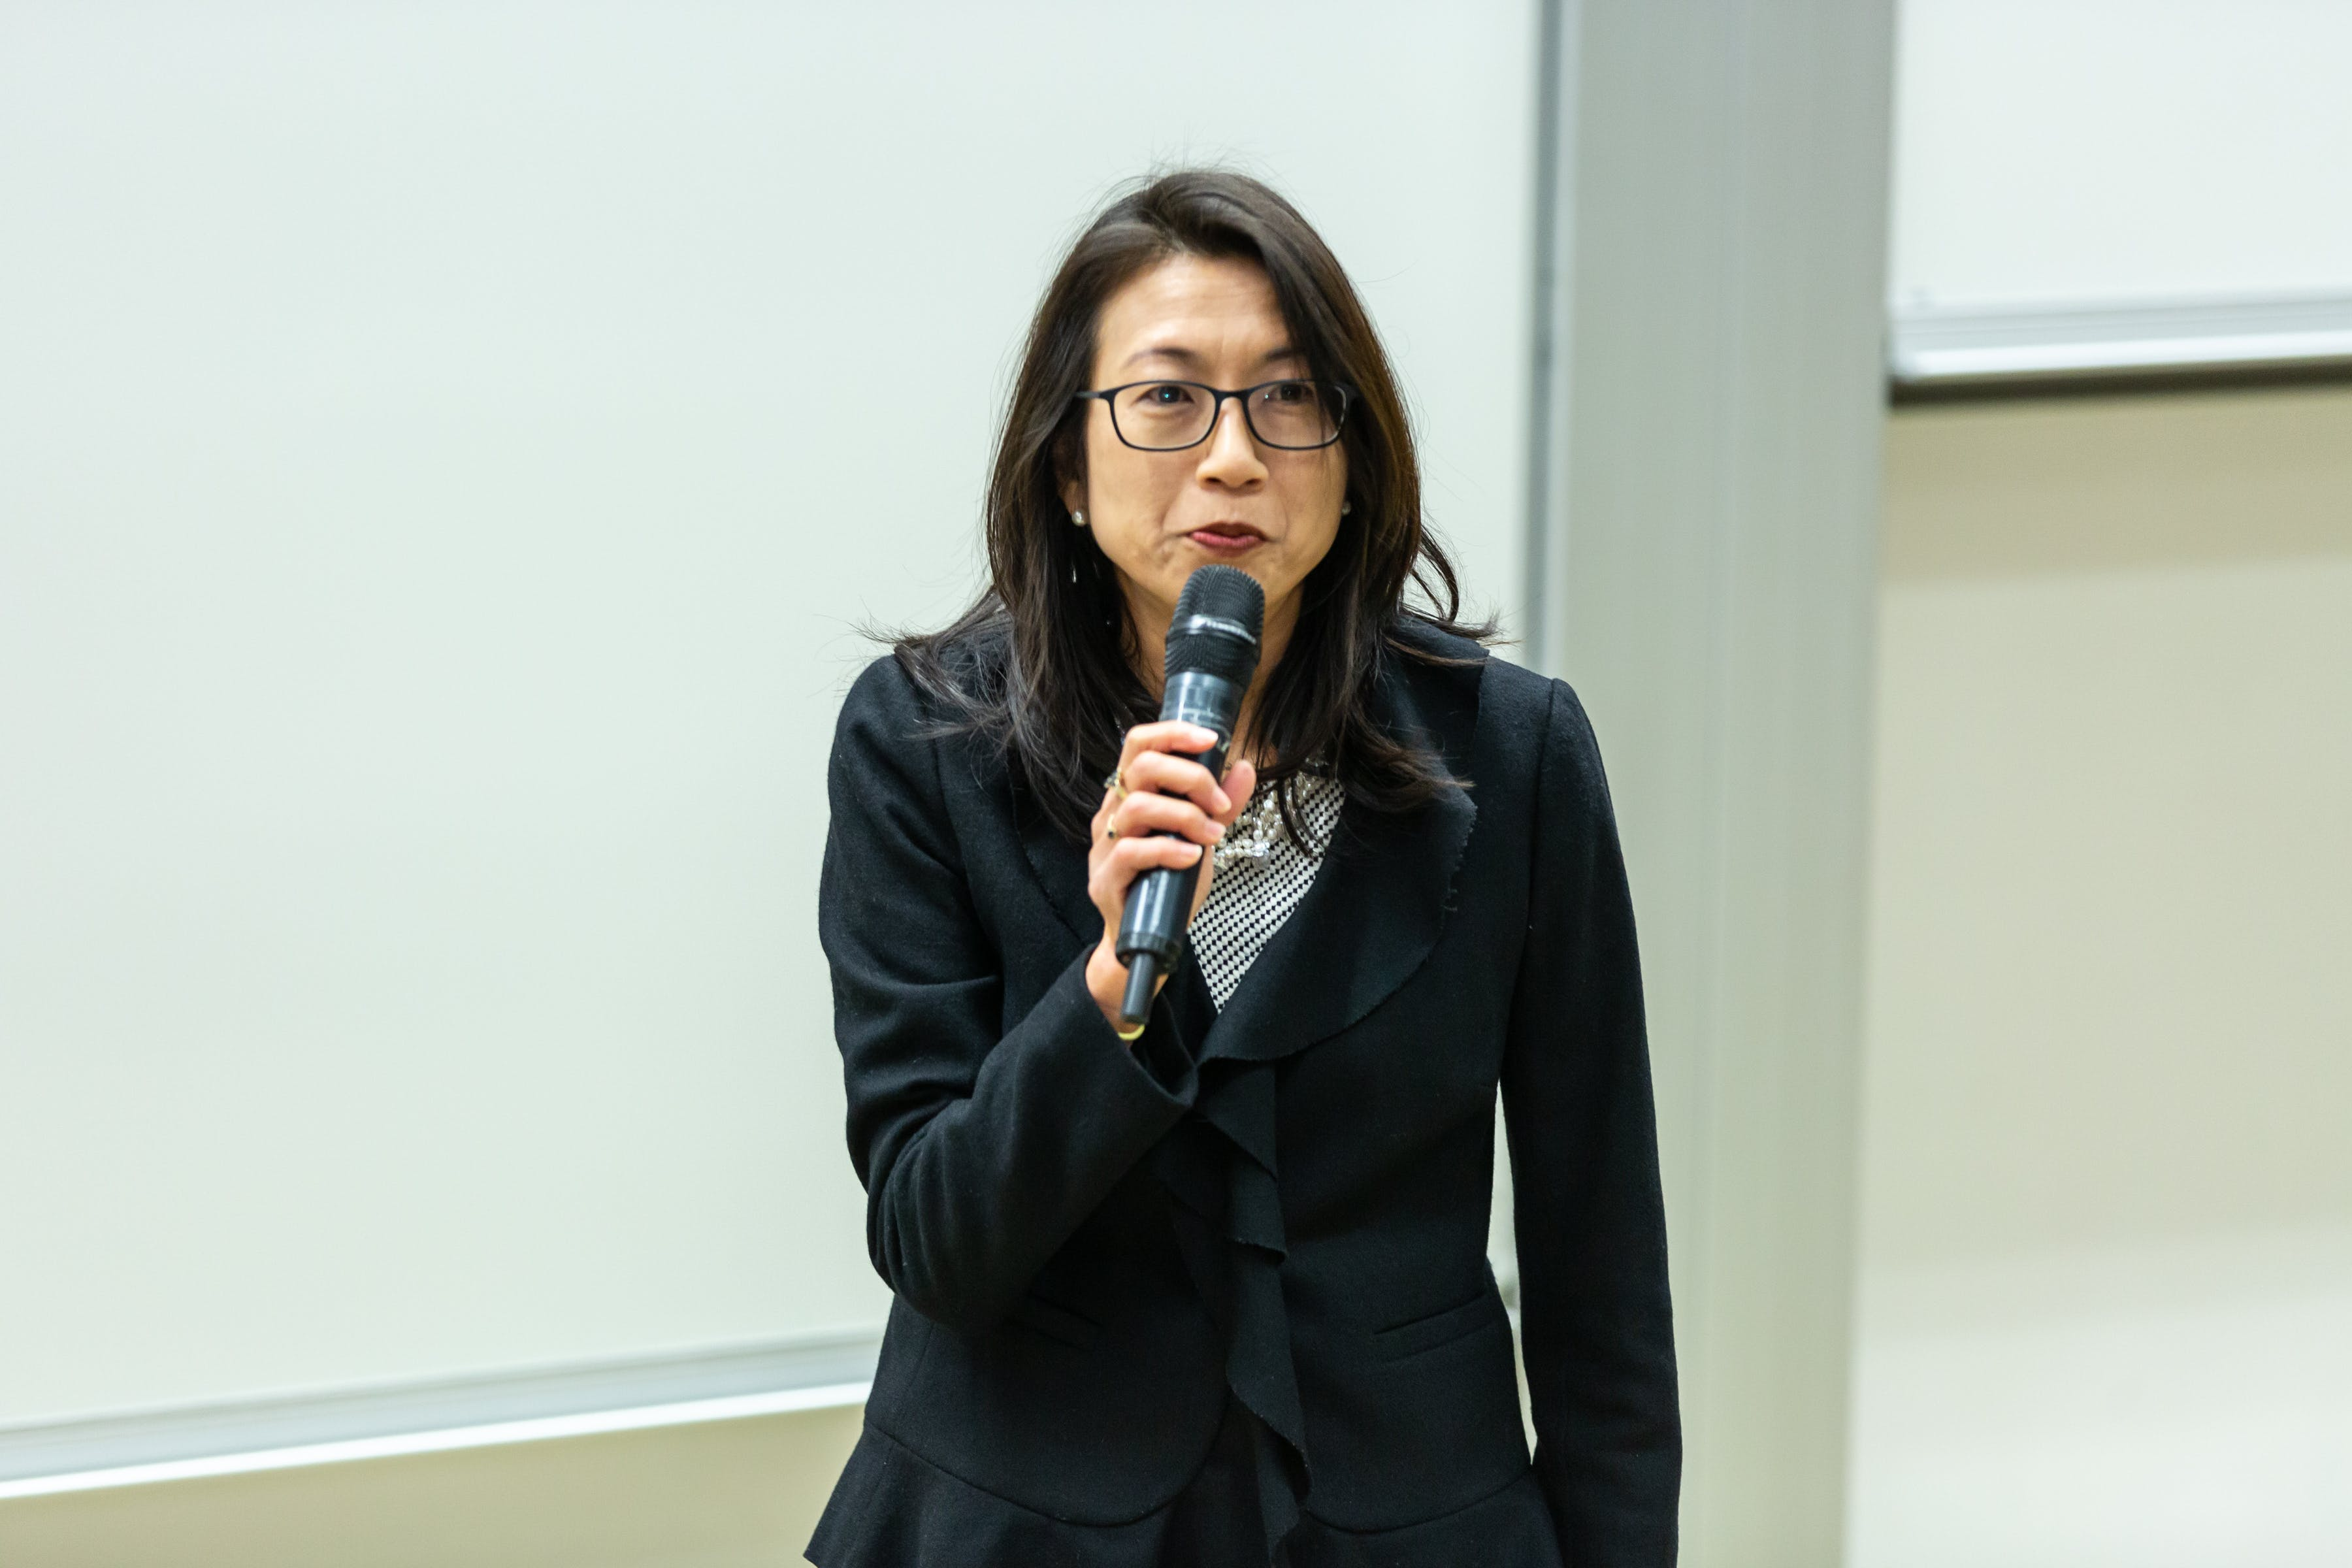 Woman Wearing Black Blazer Talking to Microphone Beside White Wall